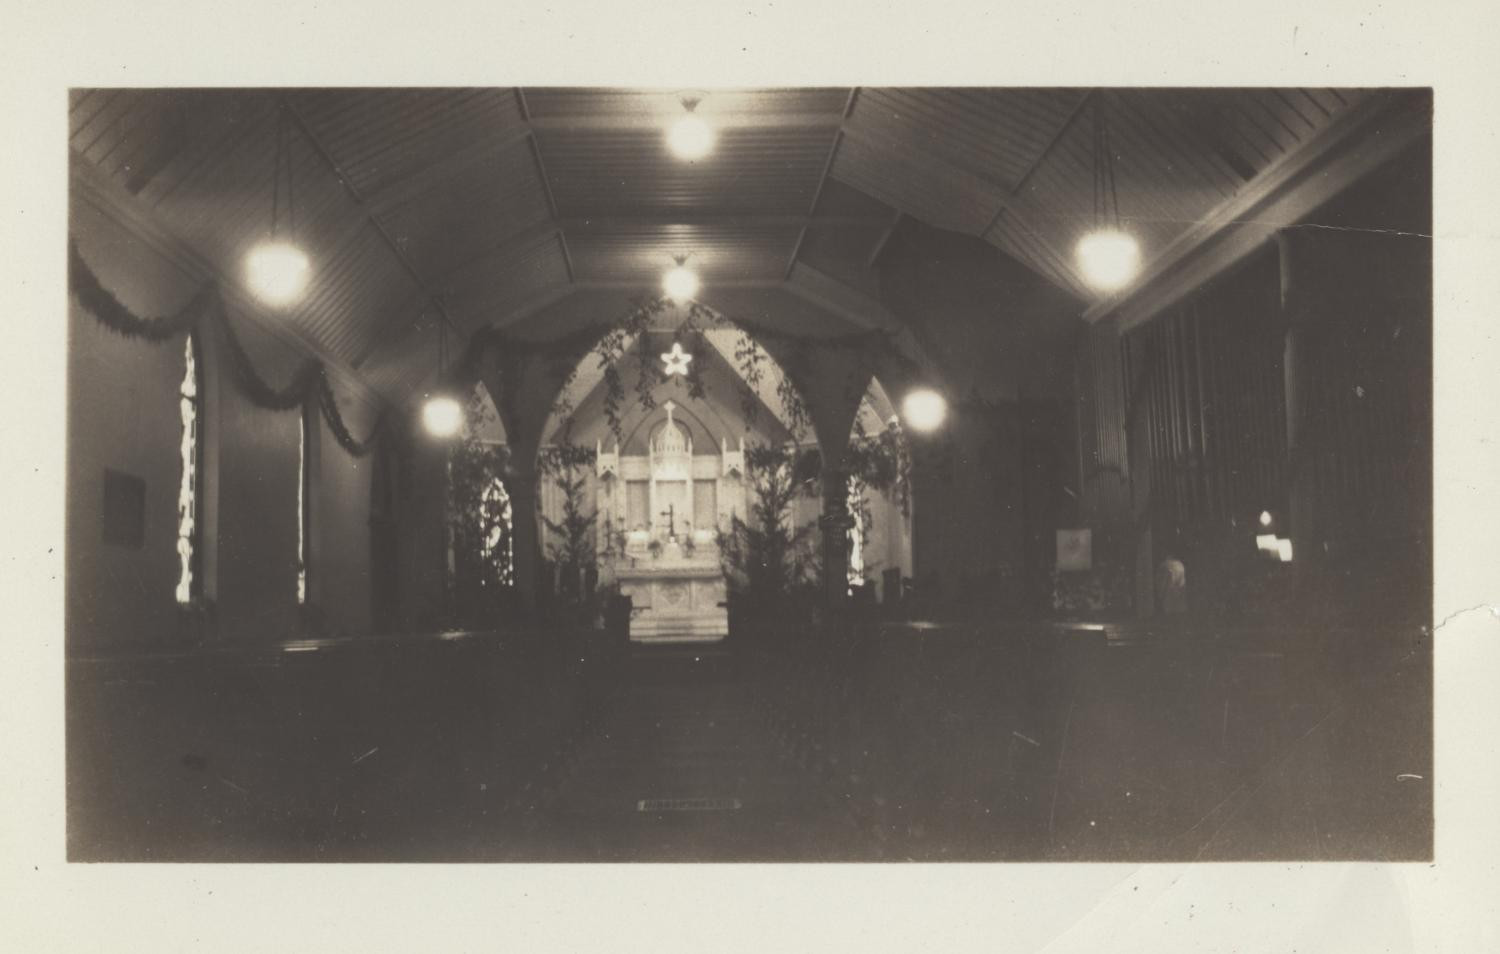 [Interior of St. Davids Episcopal Church], Photograph of the sanctuary of St. Davids Episcopal Church decorated with lights and garland.,